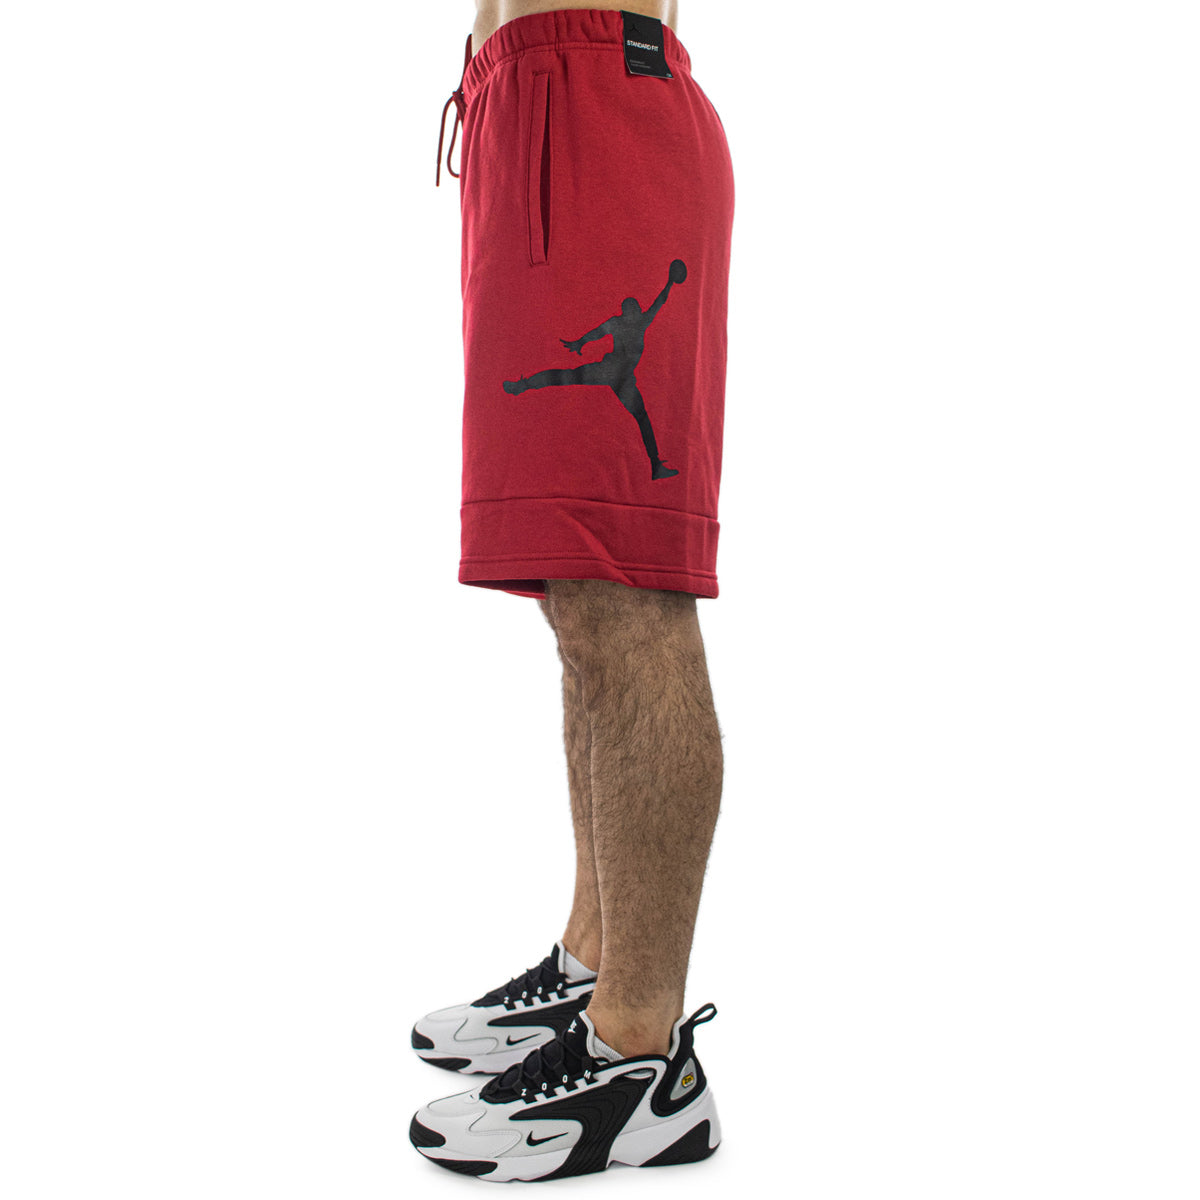 Jordan Jordan Jumpman Air Basketball Short CK6707-687-